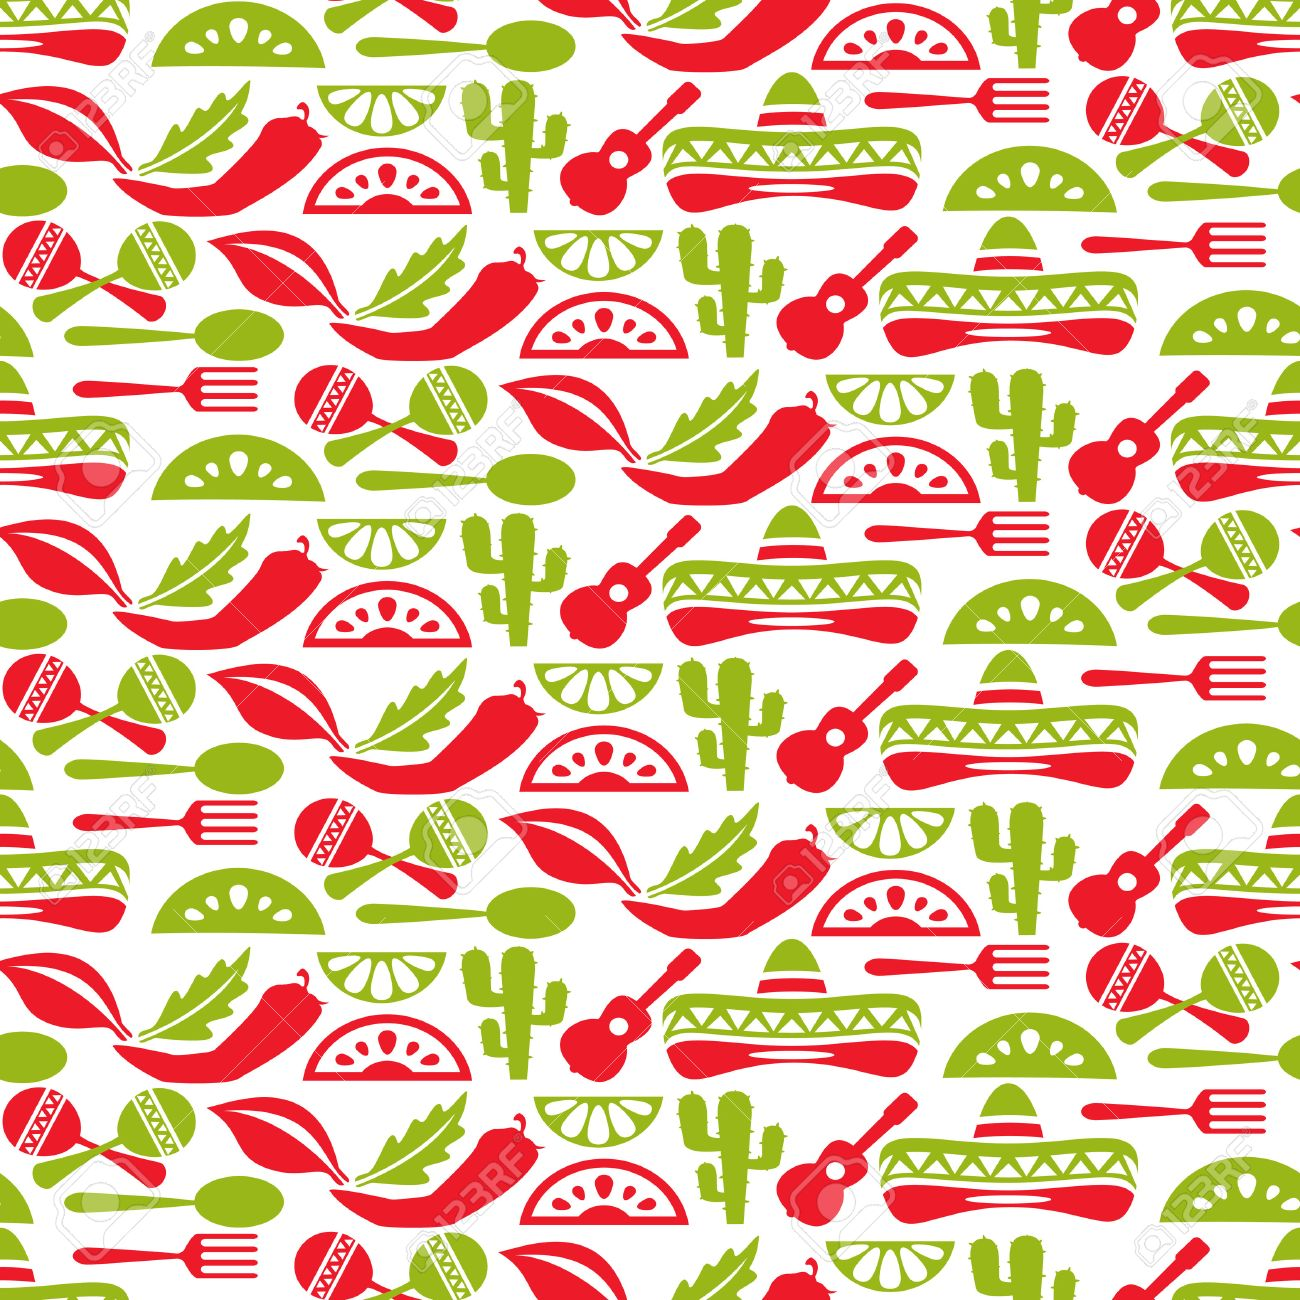 Mexican pattern  Fiesta and sombrero, seamless background, mexico